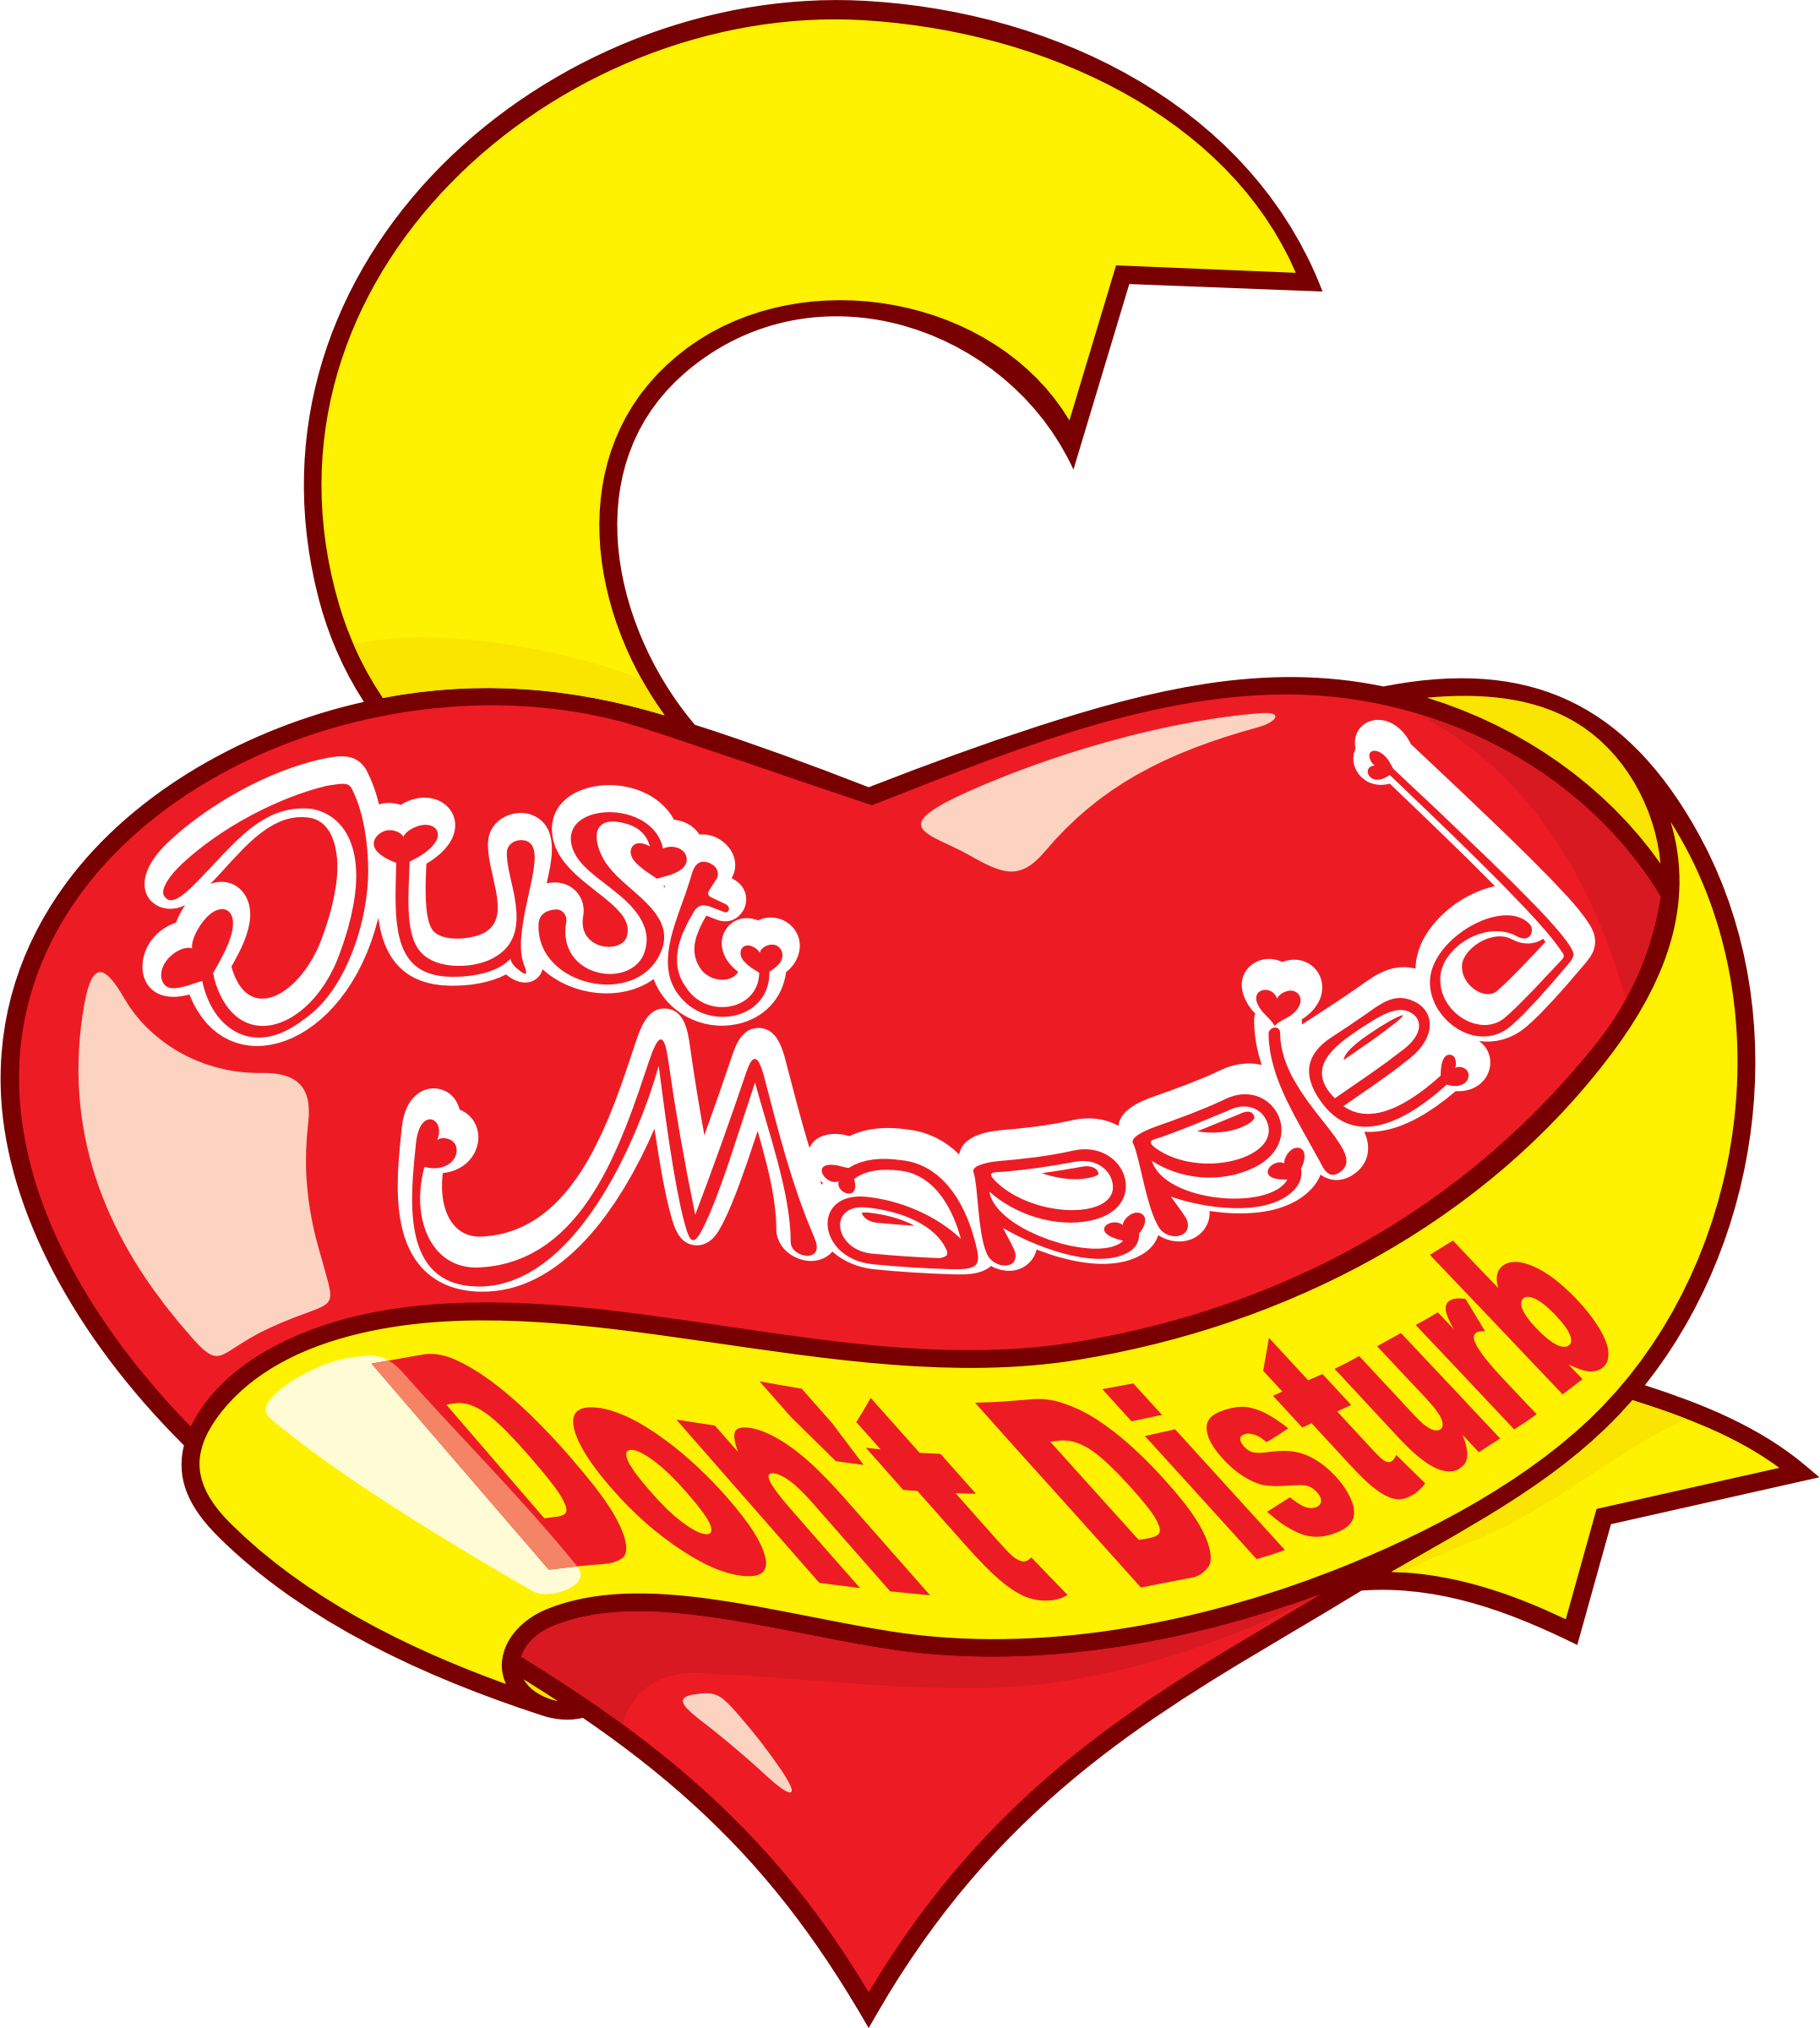 'Just Married' heart by wardogs